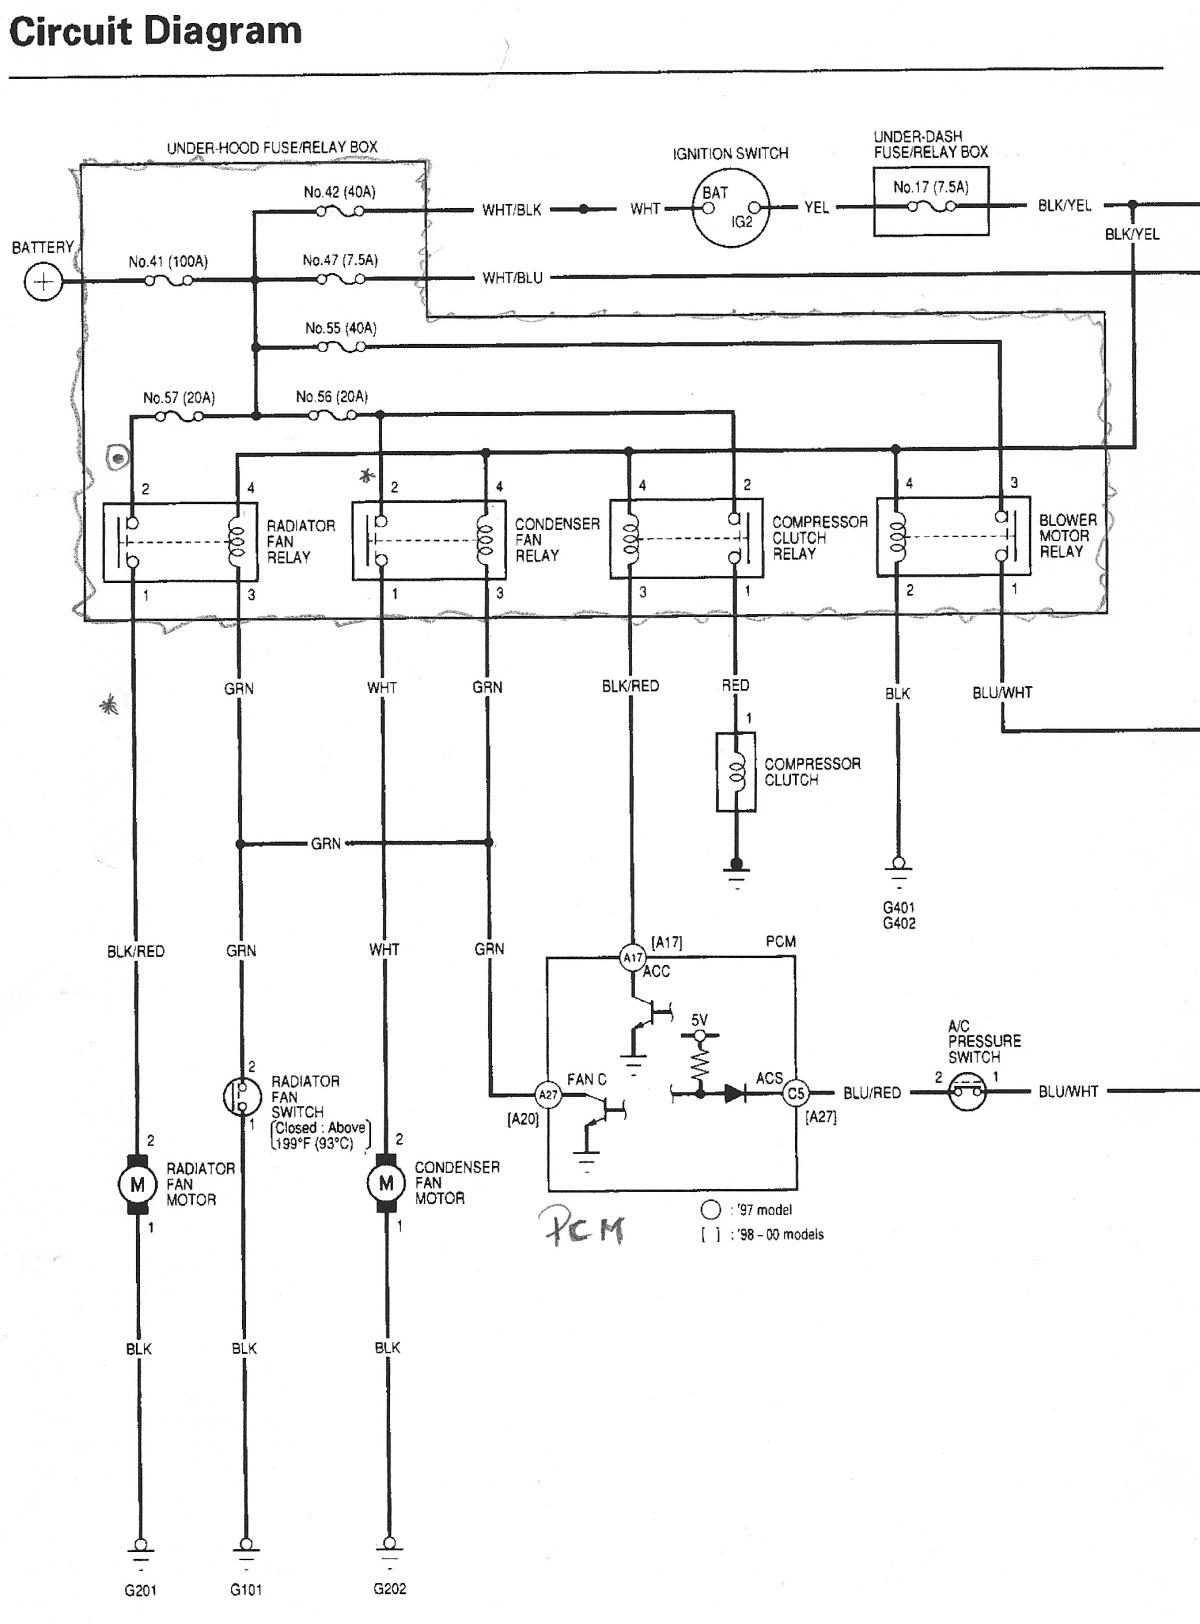 d366b8 daewoo cielo electrical wiring diagram free download | wiring  resources  wiring resources